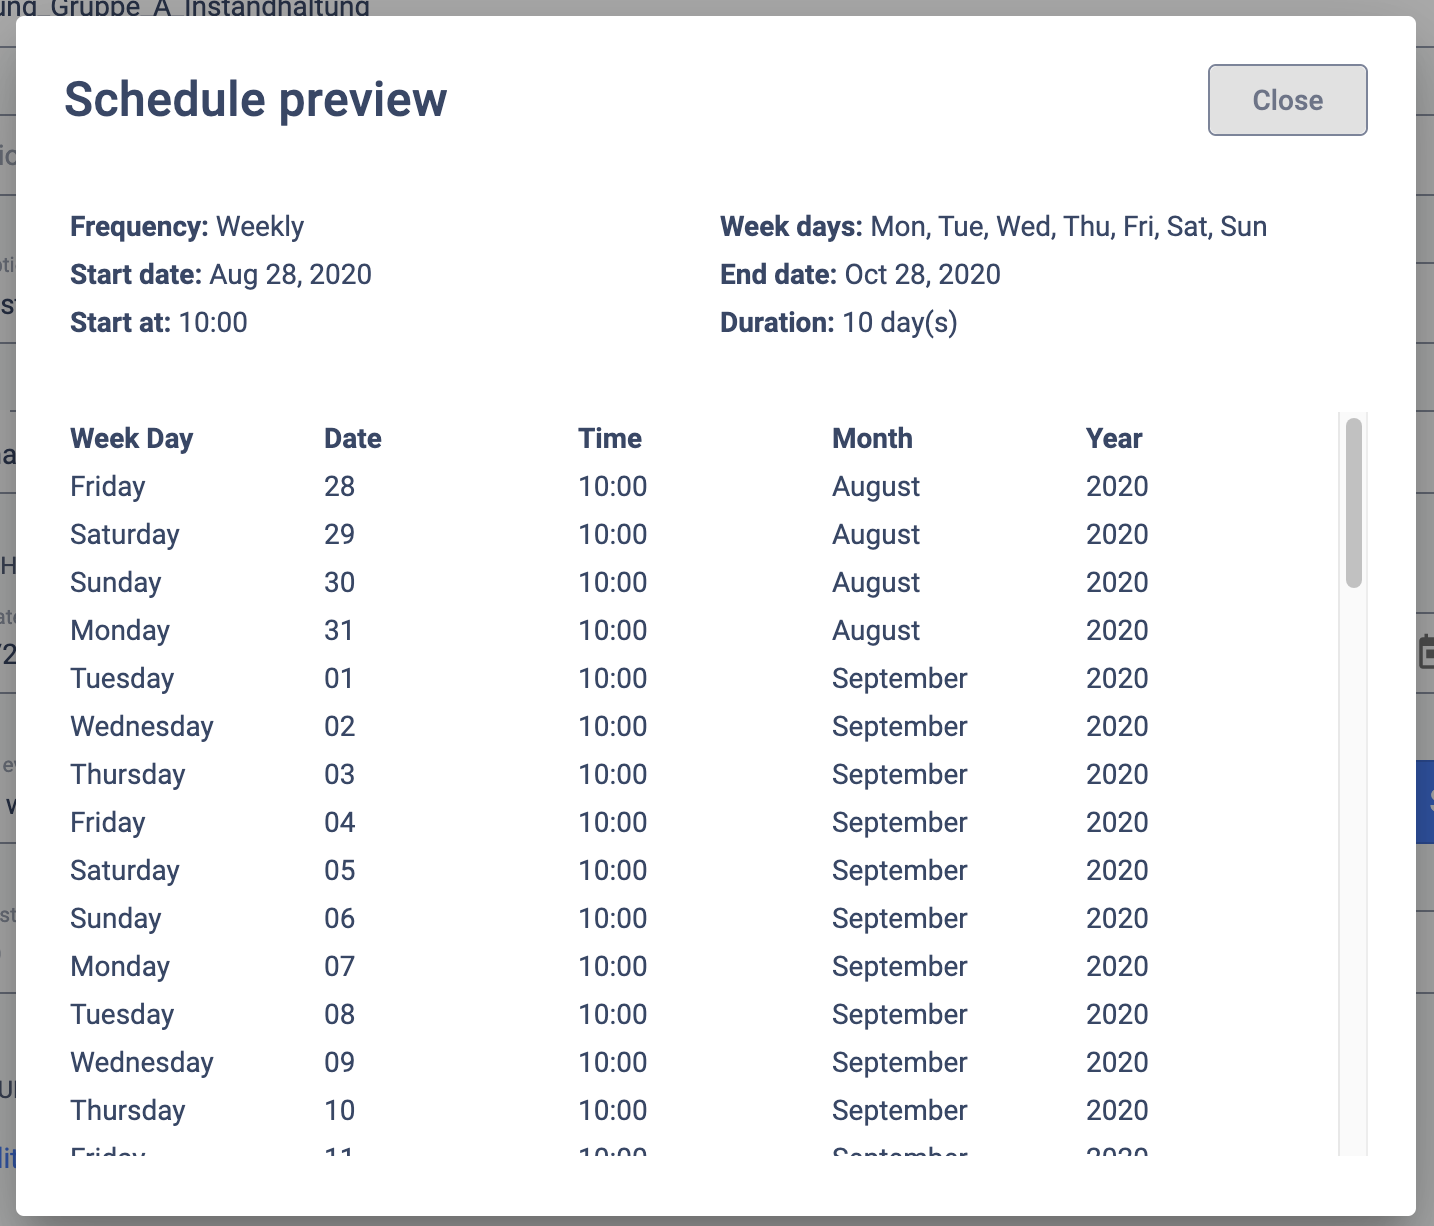 schedule preview view for rules